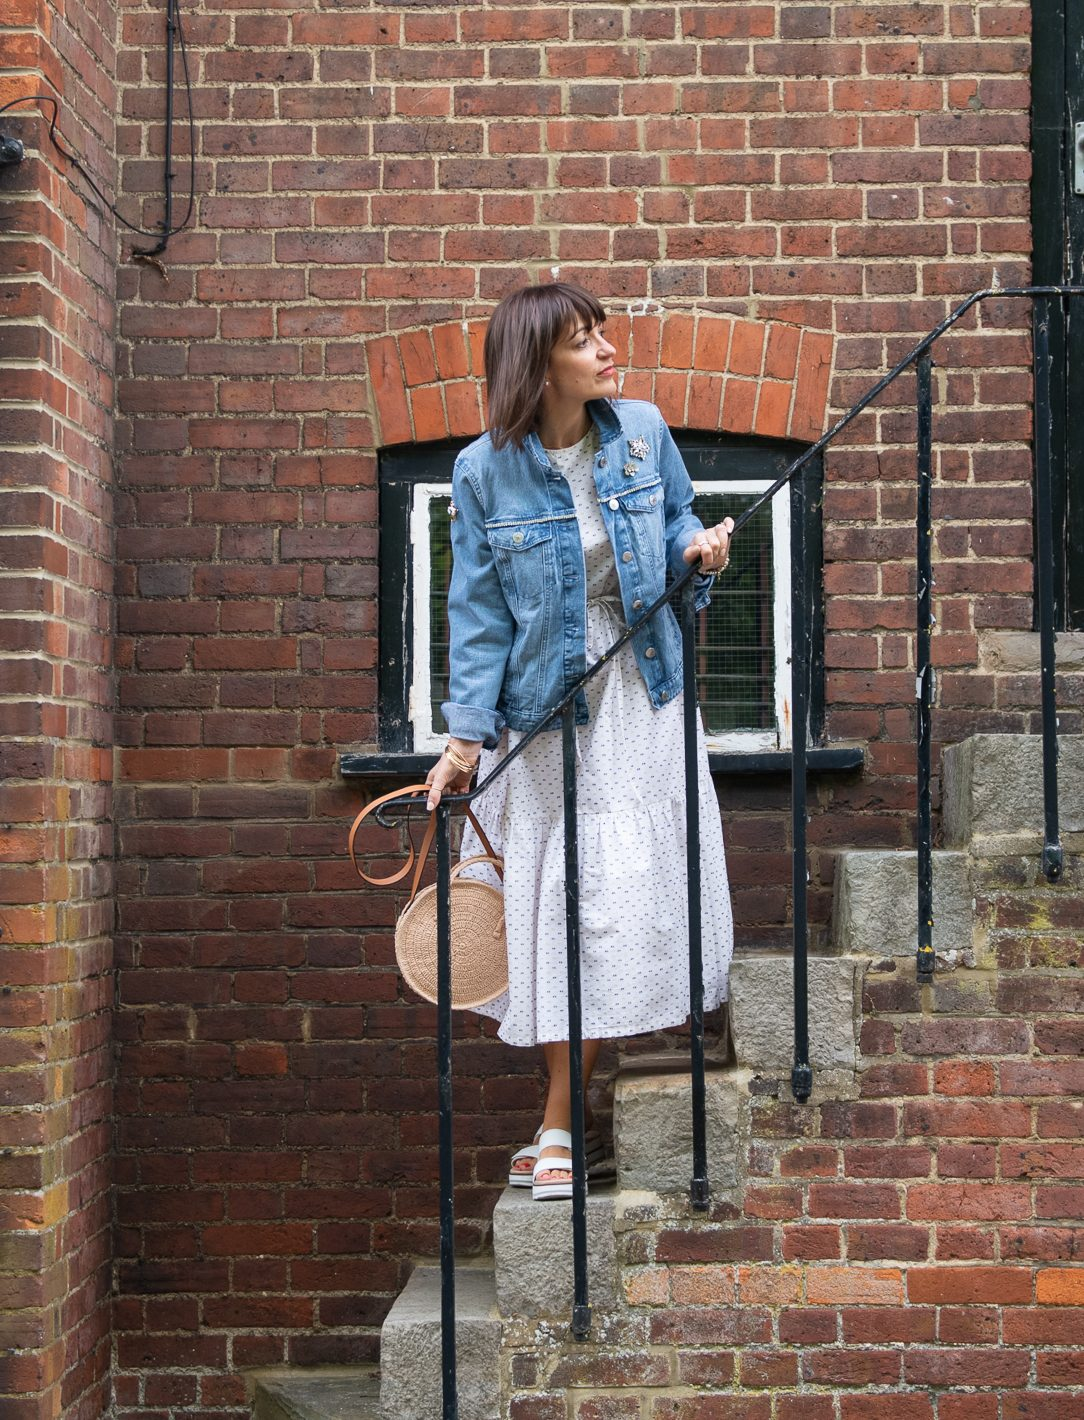 Lizzi on staircase wearing a white summer dress